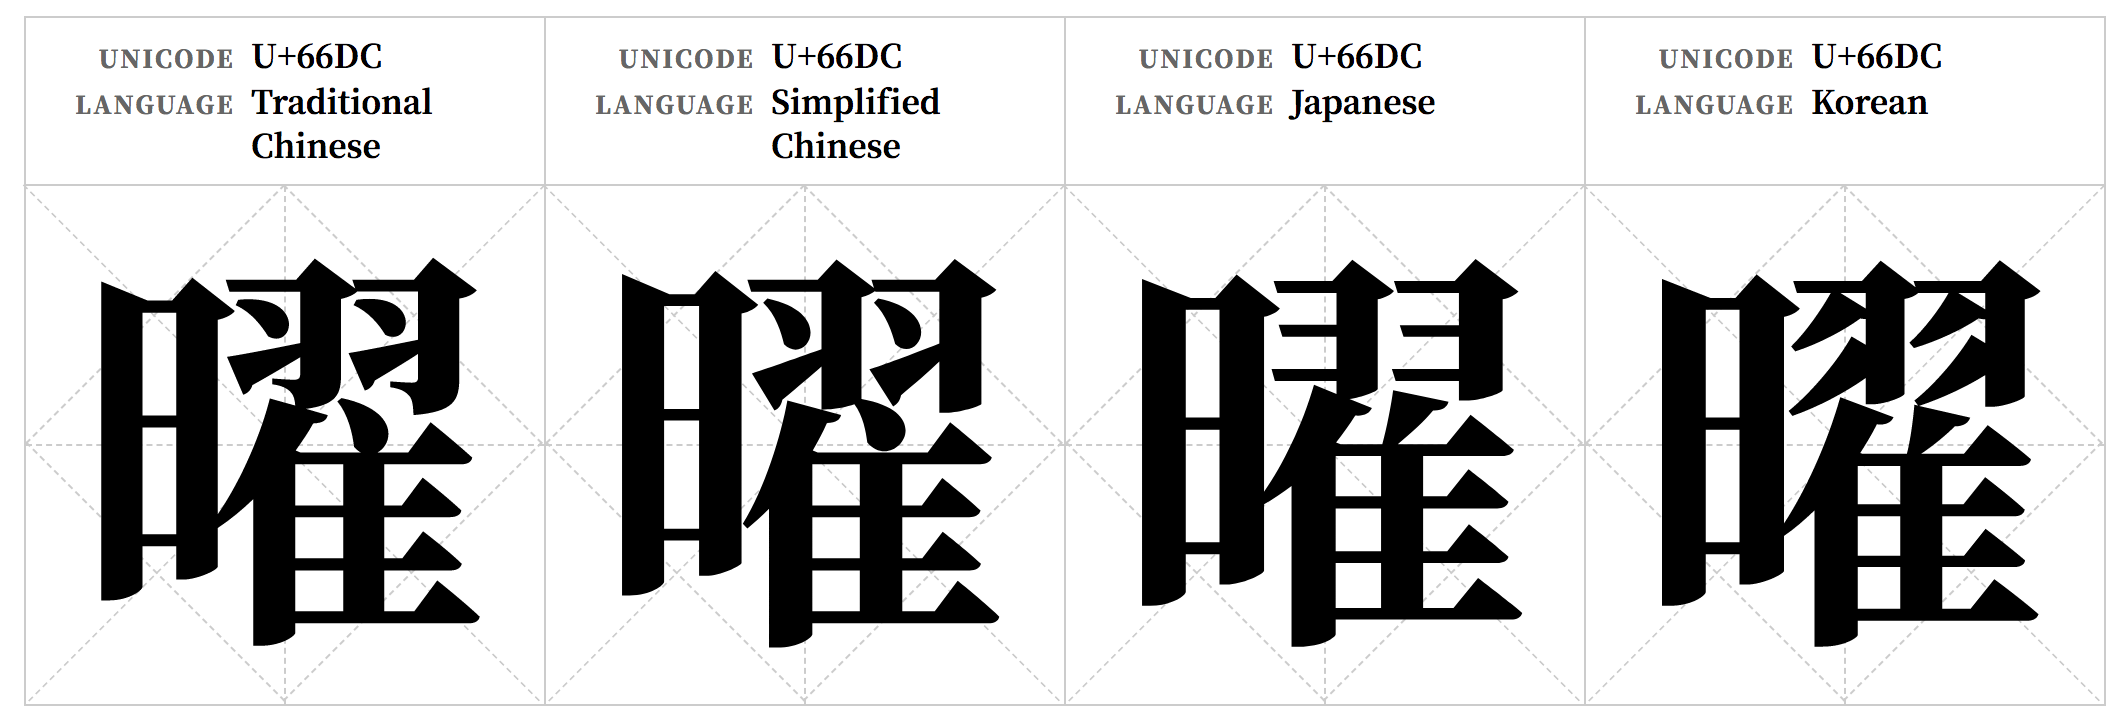 The U+66DC glyph shown with different styles for Japanese, Korean, Simplified Chinese, and Traditional Chinese.